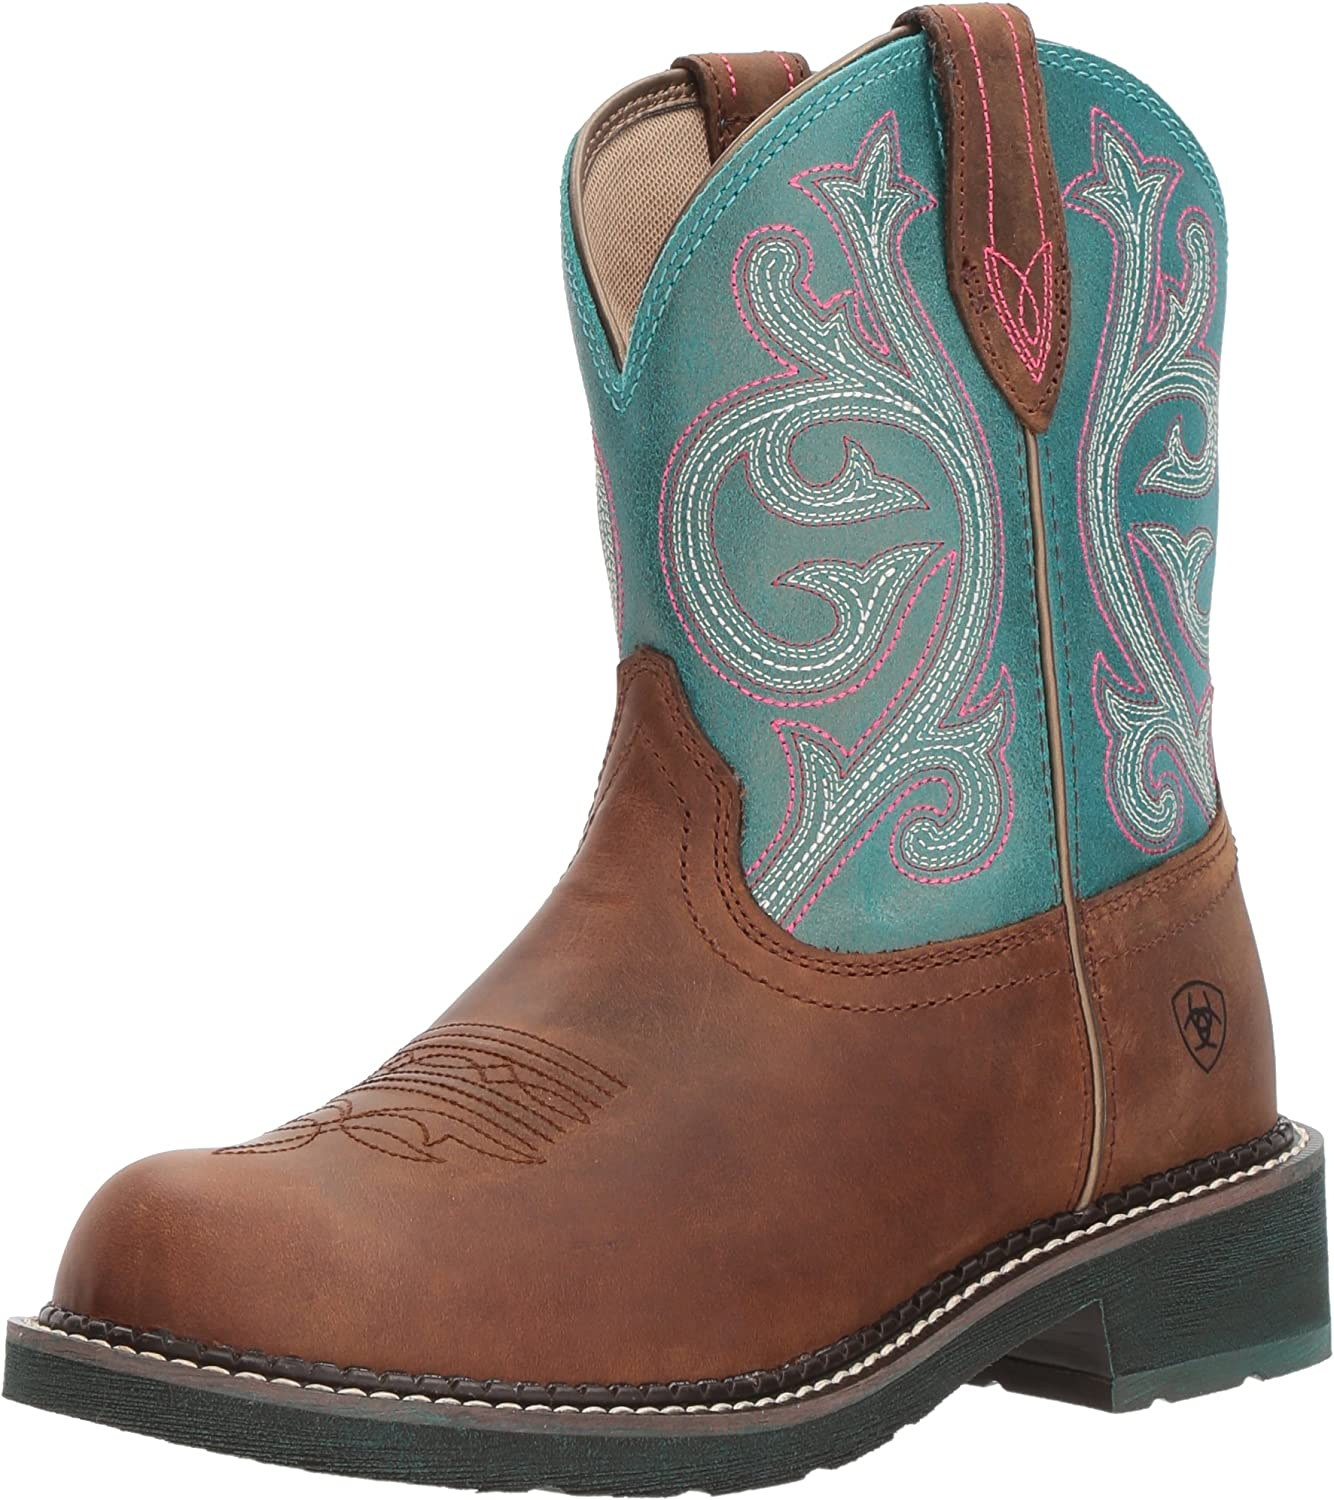 Ariat Women's Fatbaby Heritage Western Boot, Distressed Brown Shimmer Turquoise, 8 B US